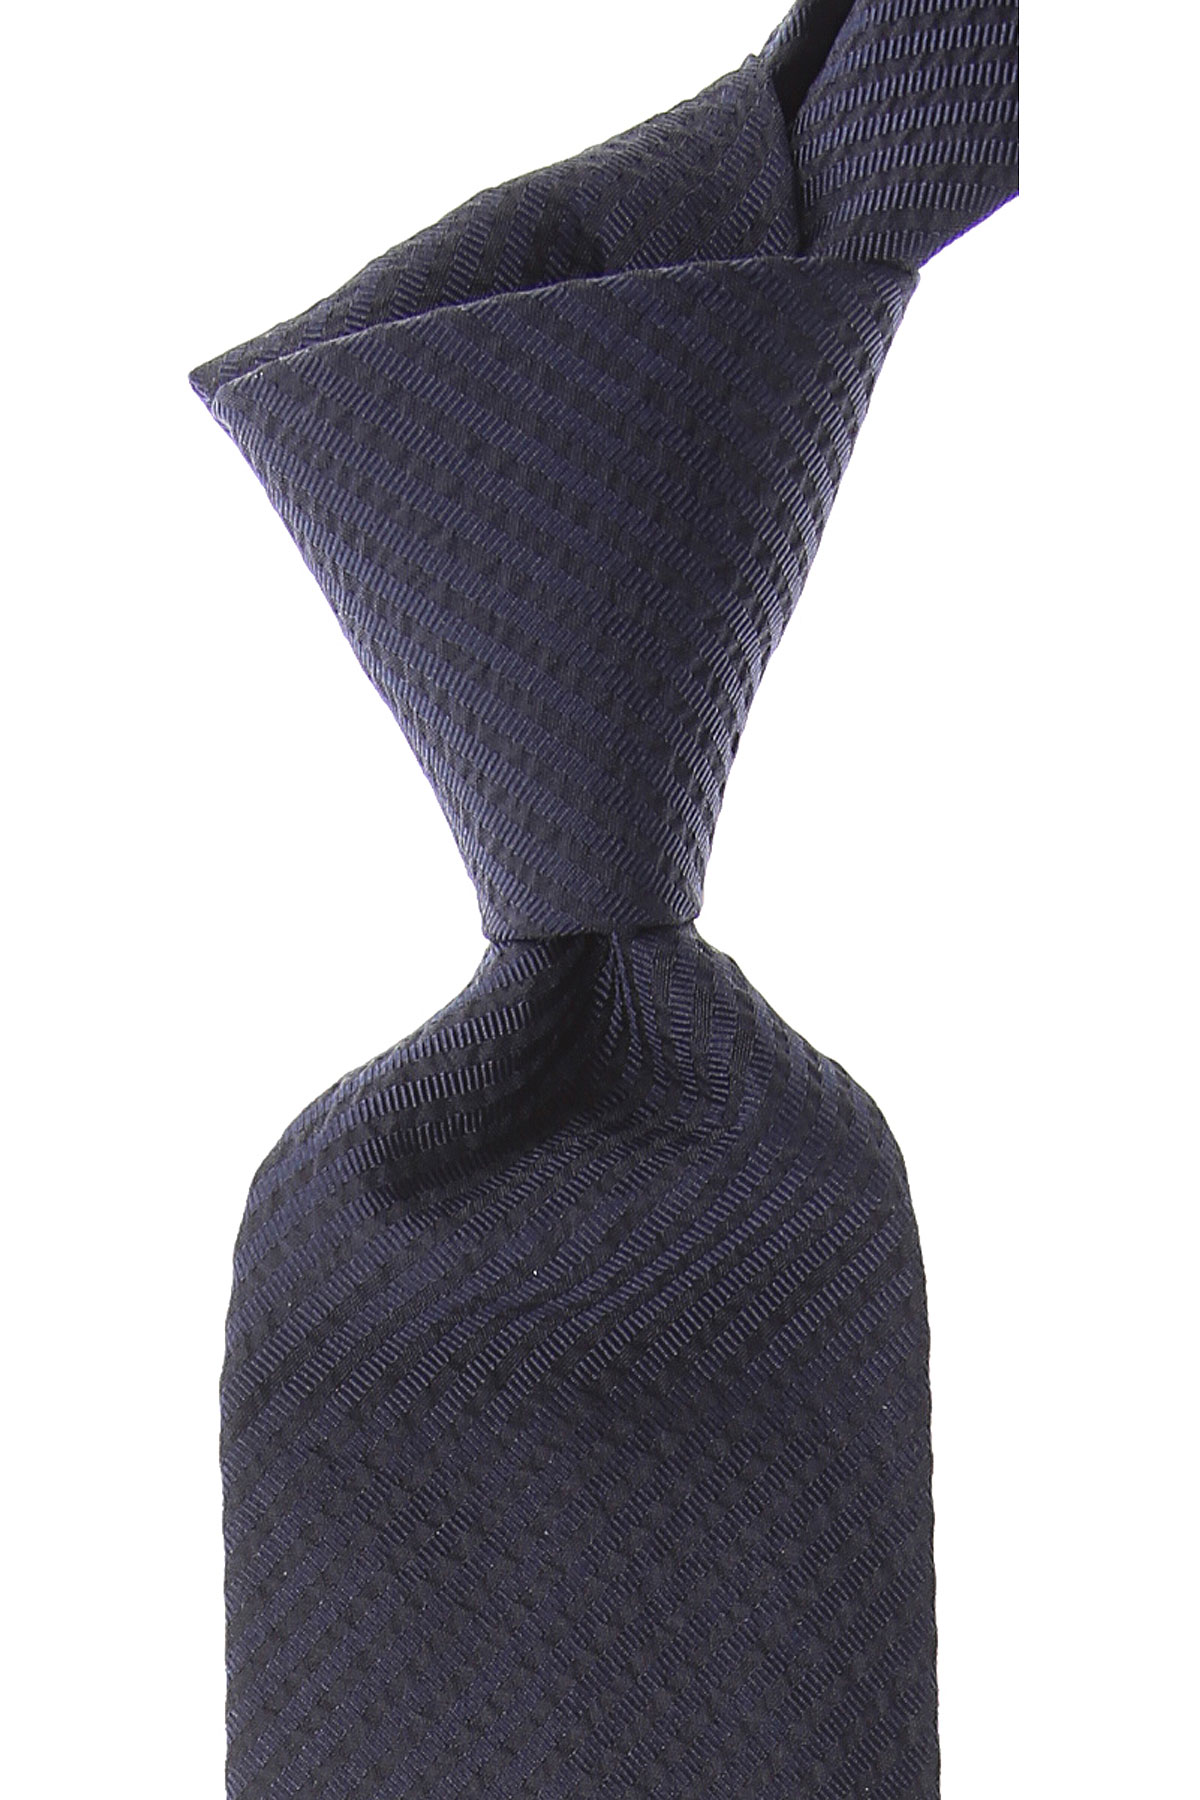 Ermenegildo_Zegna_Ties_On_Sale_Dark_Midnight_Blue_Silk_2019